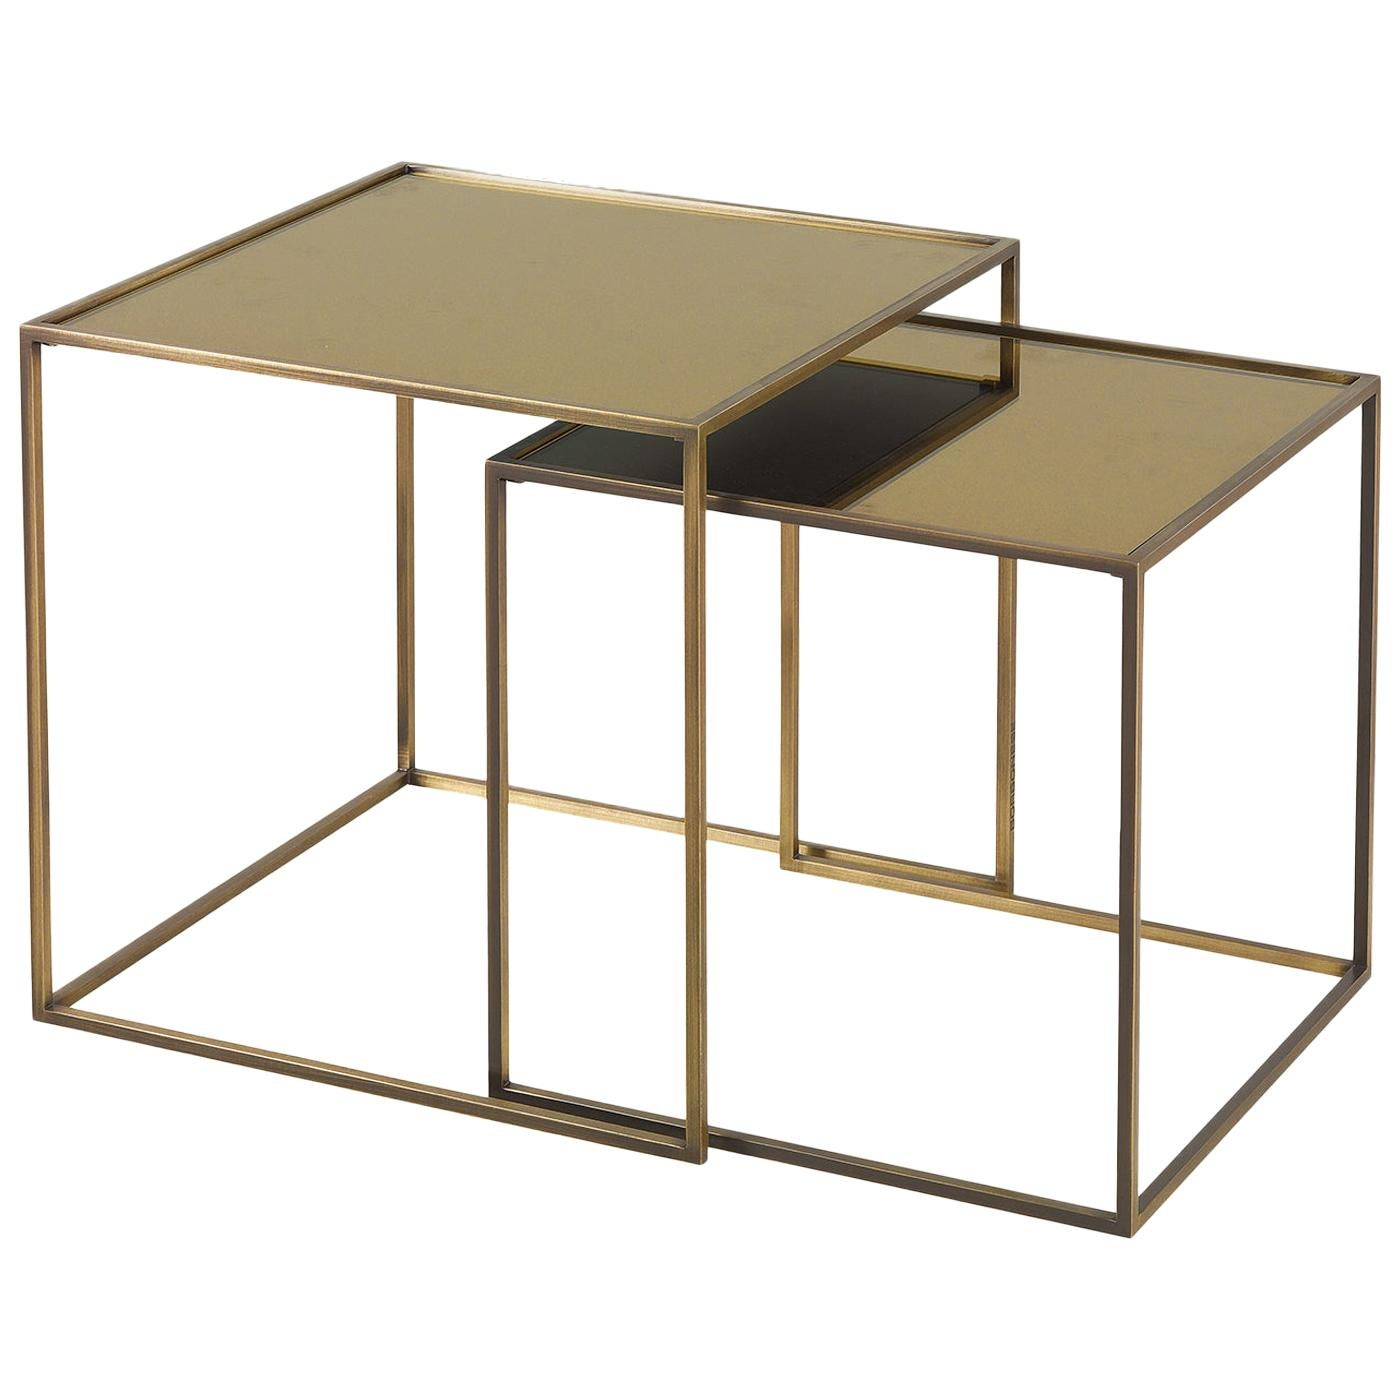 Friends Set of 2 Nesting Tables with Mirror Top